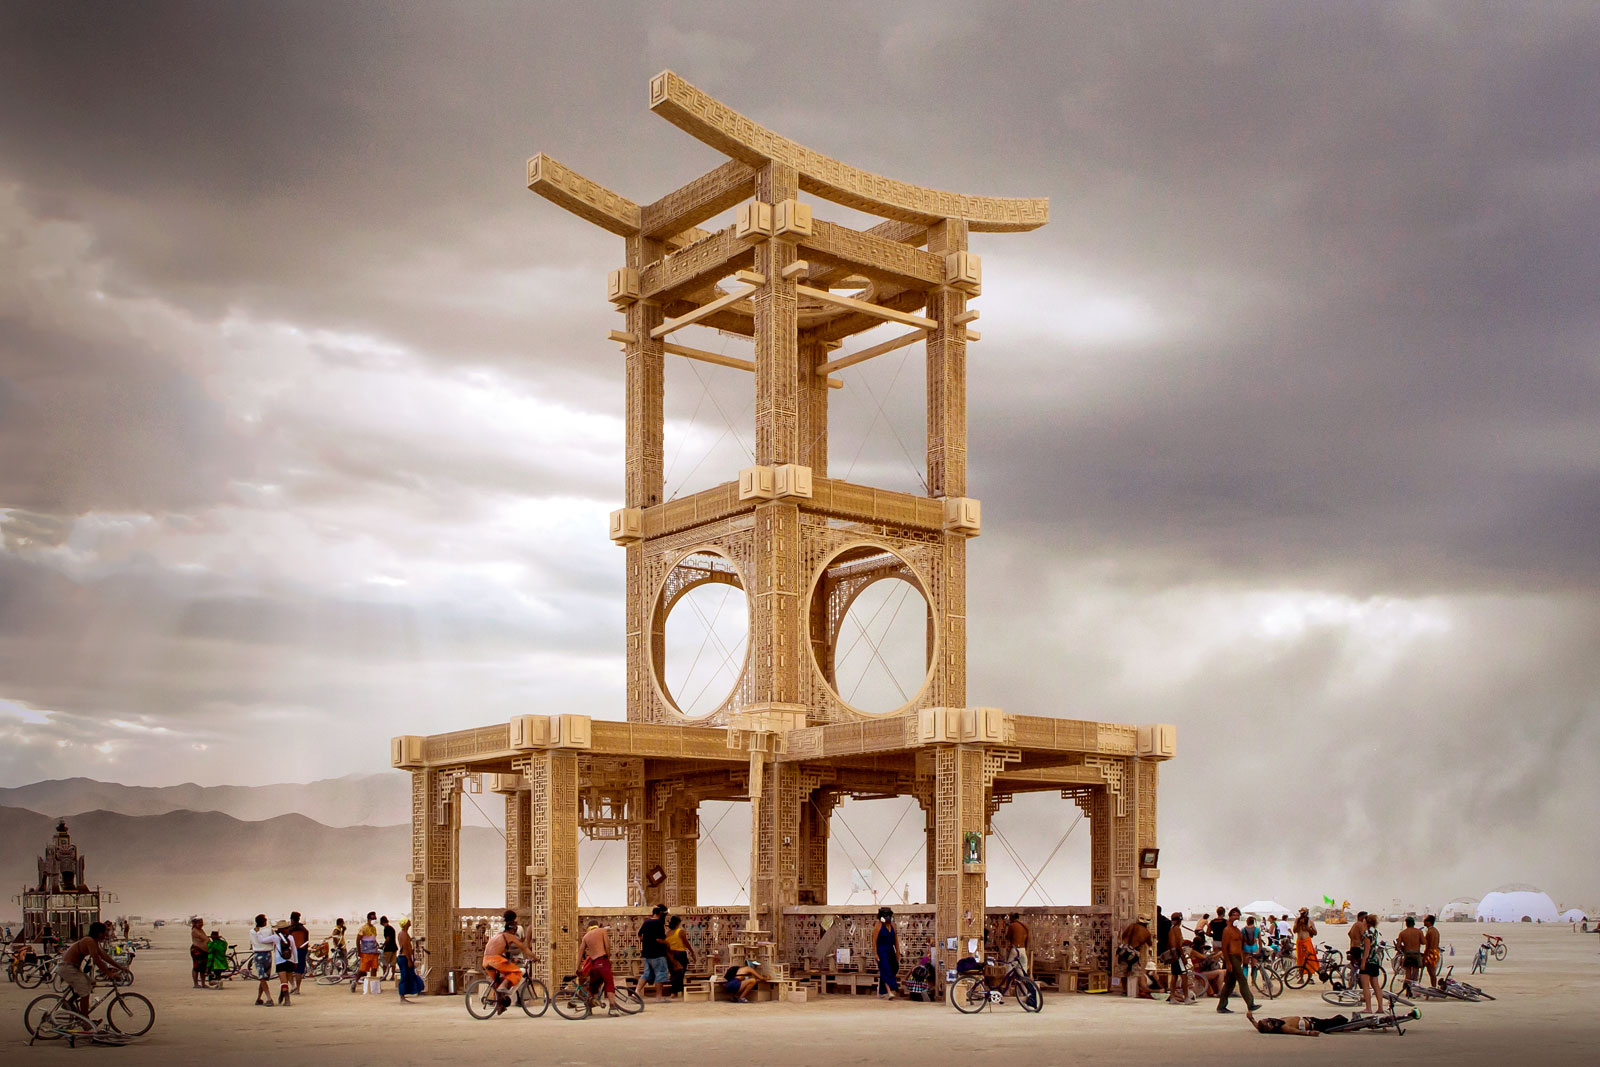 The Temple of Forgiveness at Burning Man 2007. Photo: fest300